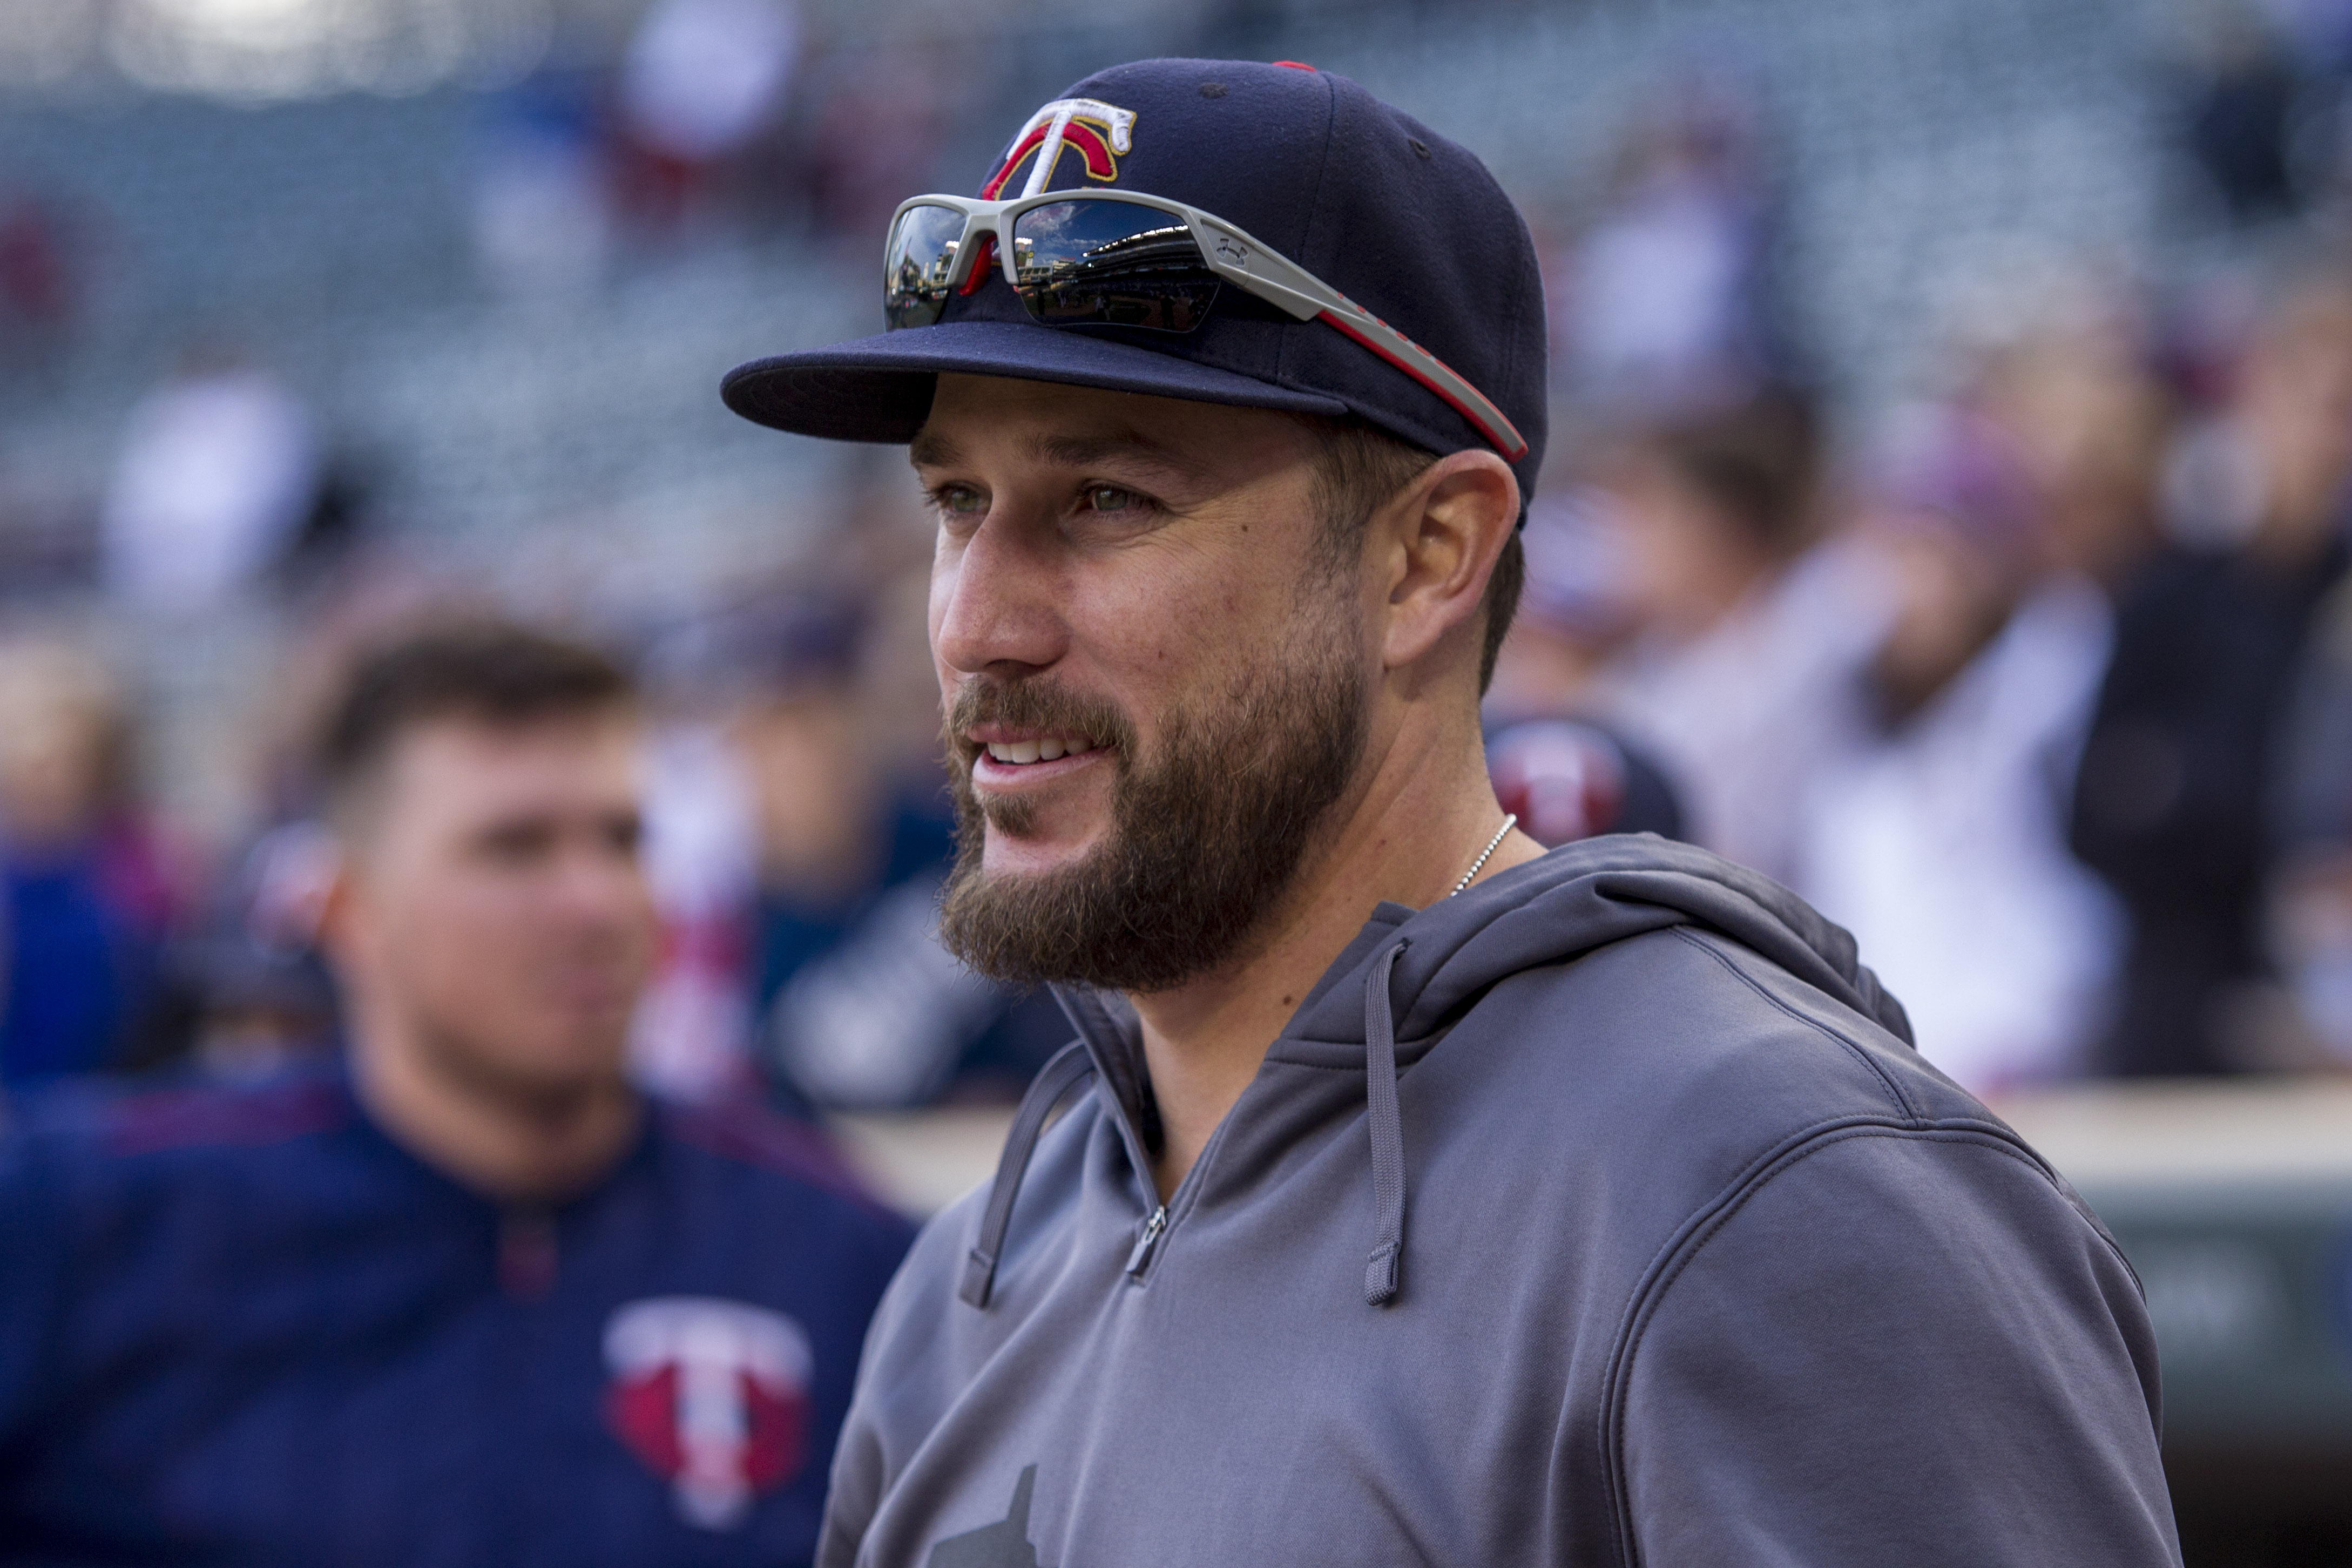 Minnesota Twin Trevor Plouffe waits to meet with a fan who won his jersey after the Twins lost 6-1 to the Kansas City Royals at a baseball game Sunday, Oct. 4, 2015, in Minneapolis. The Royals won 6-1. (AP Photo/Bruce Kluckhohn)